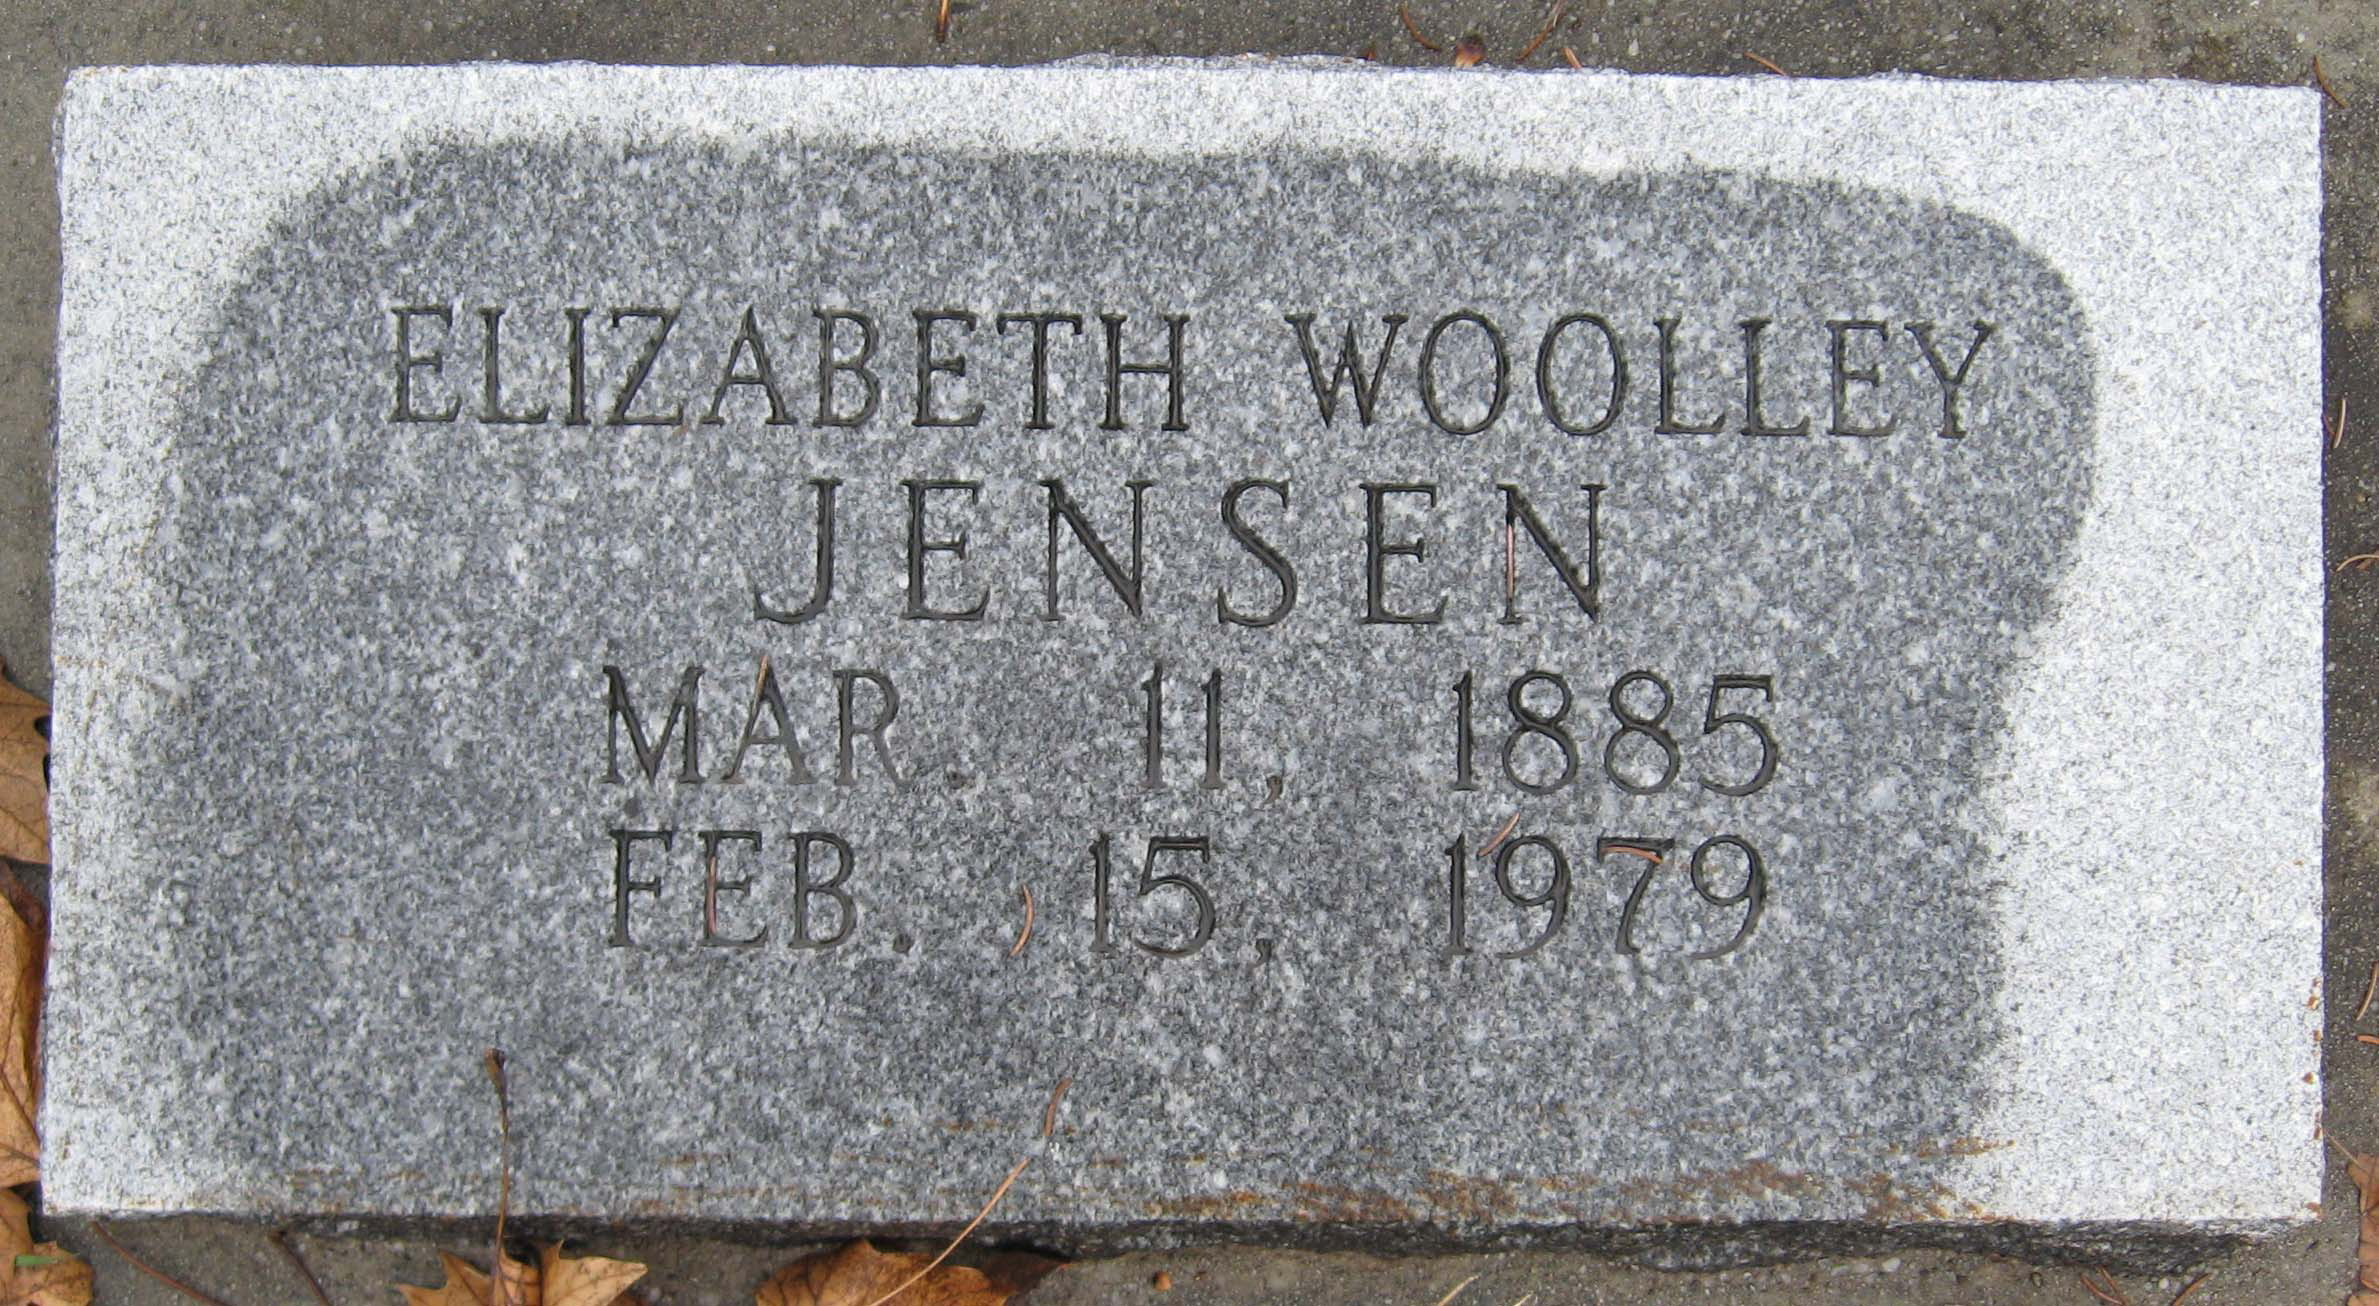 Elizabeth Price Woolley